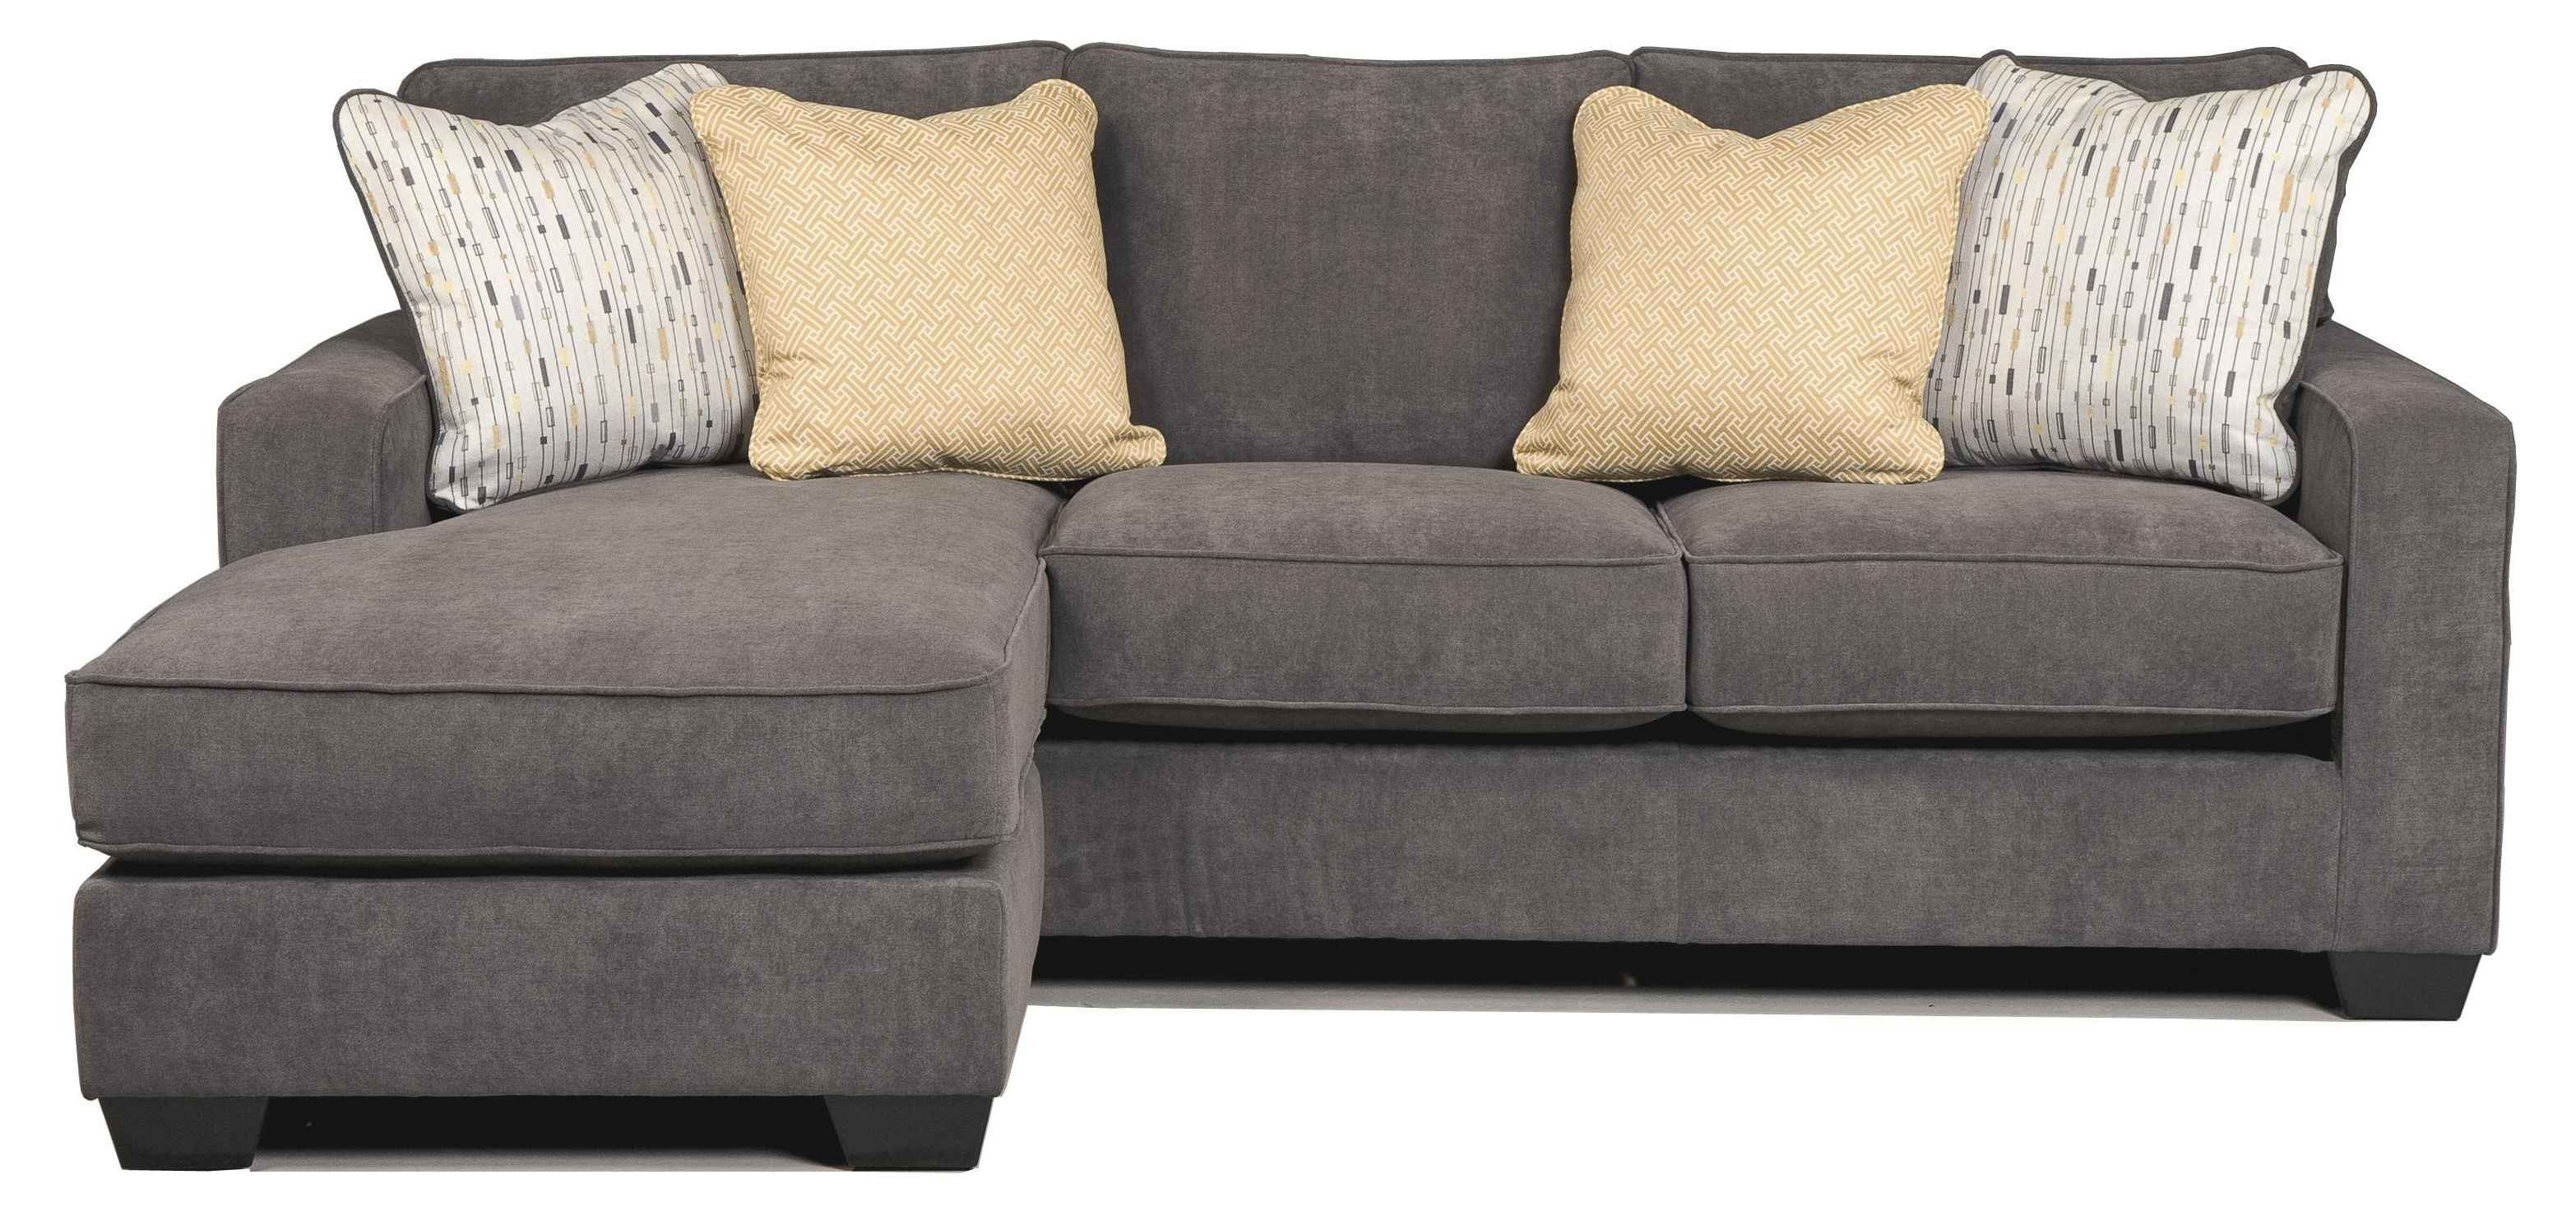 Signature Designashley Hodan – Marble Contemporary Sofa Chaise With Well Known Clarksville Tn Sectional Sofas (View 18 of 20)